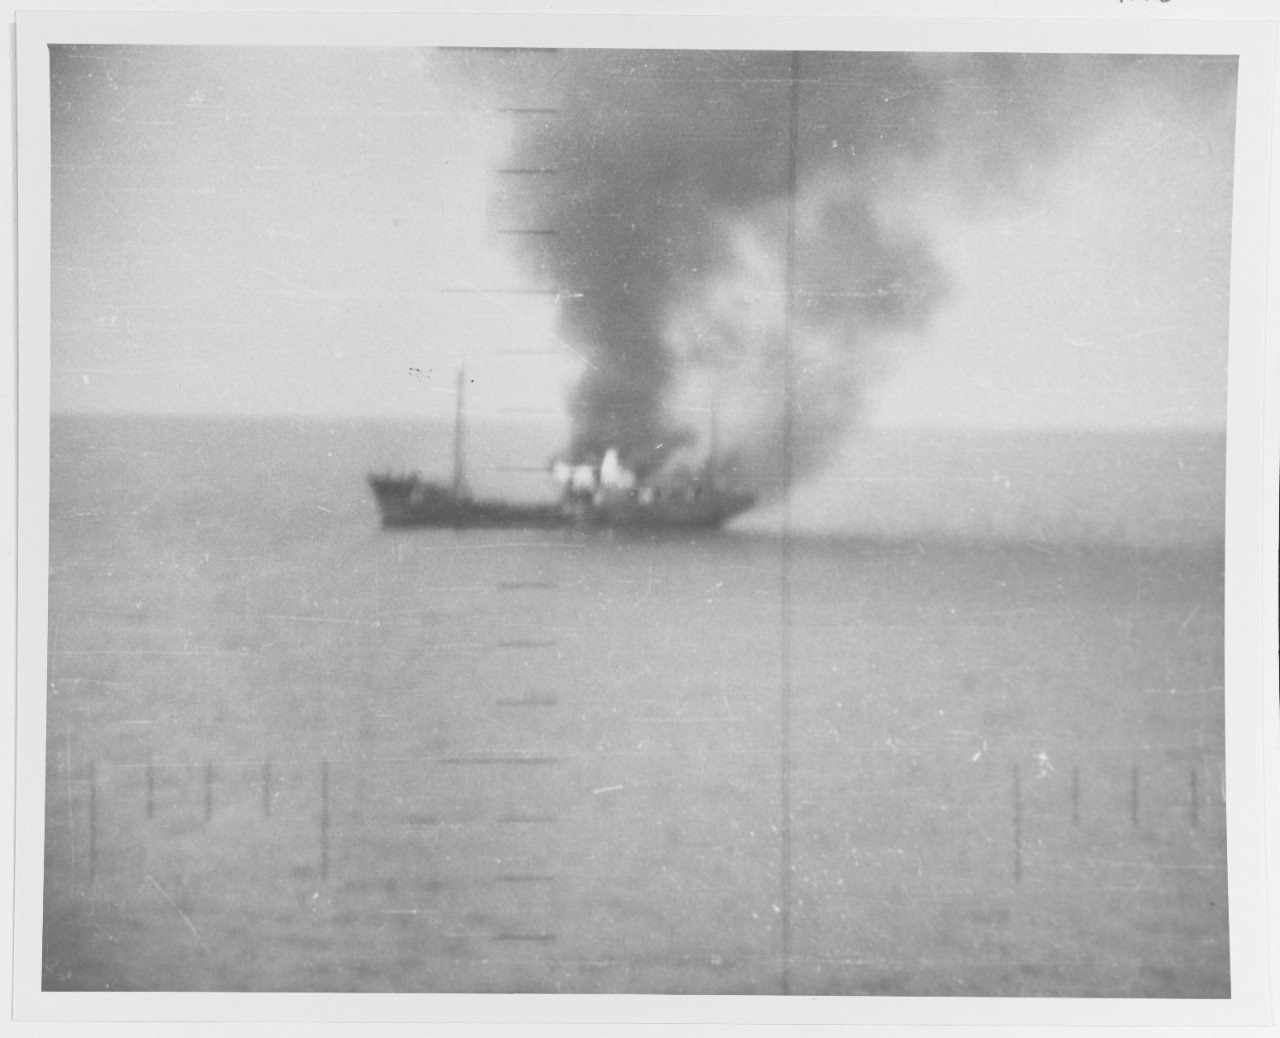 A Japanese picket vessel engulfed in flames after being attacked by the Silversides in October 1942. This photograph was taken through the sub's periscope. National Archives, RG80.